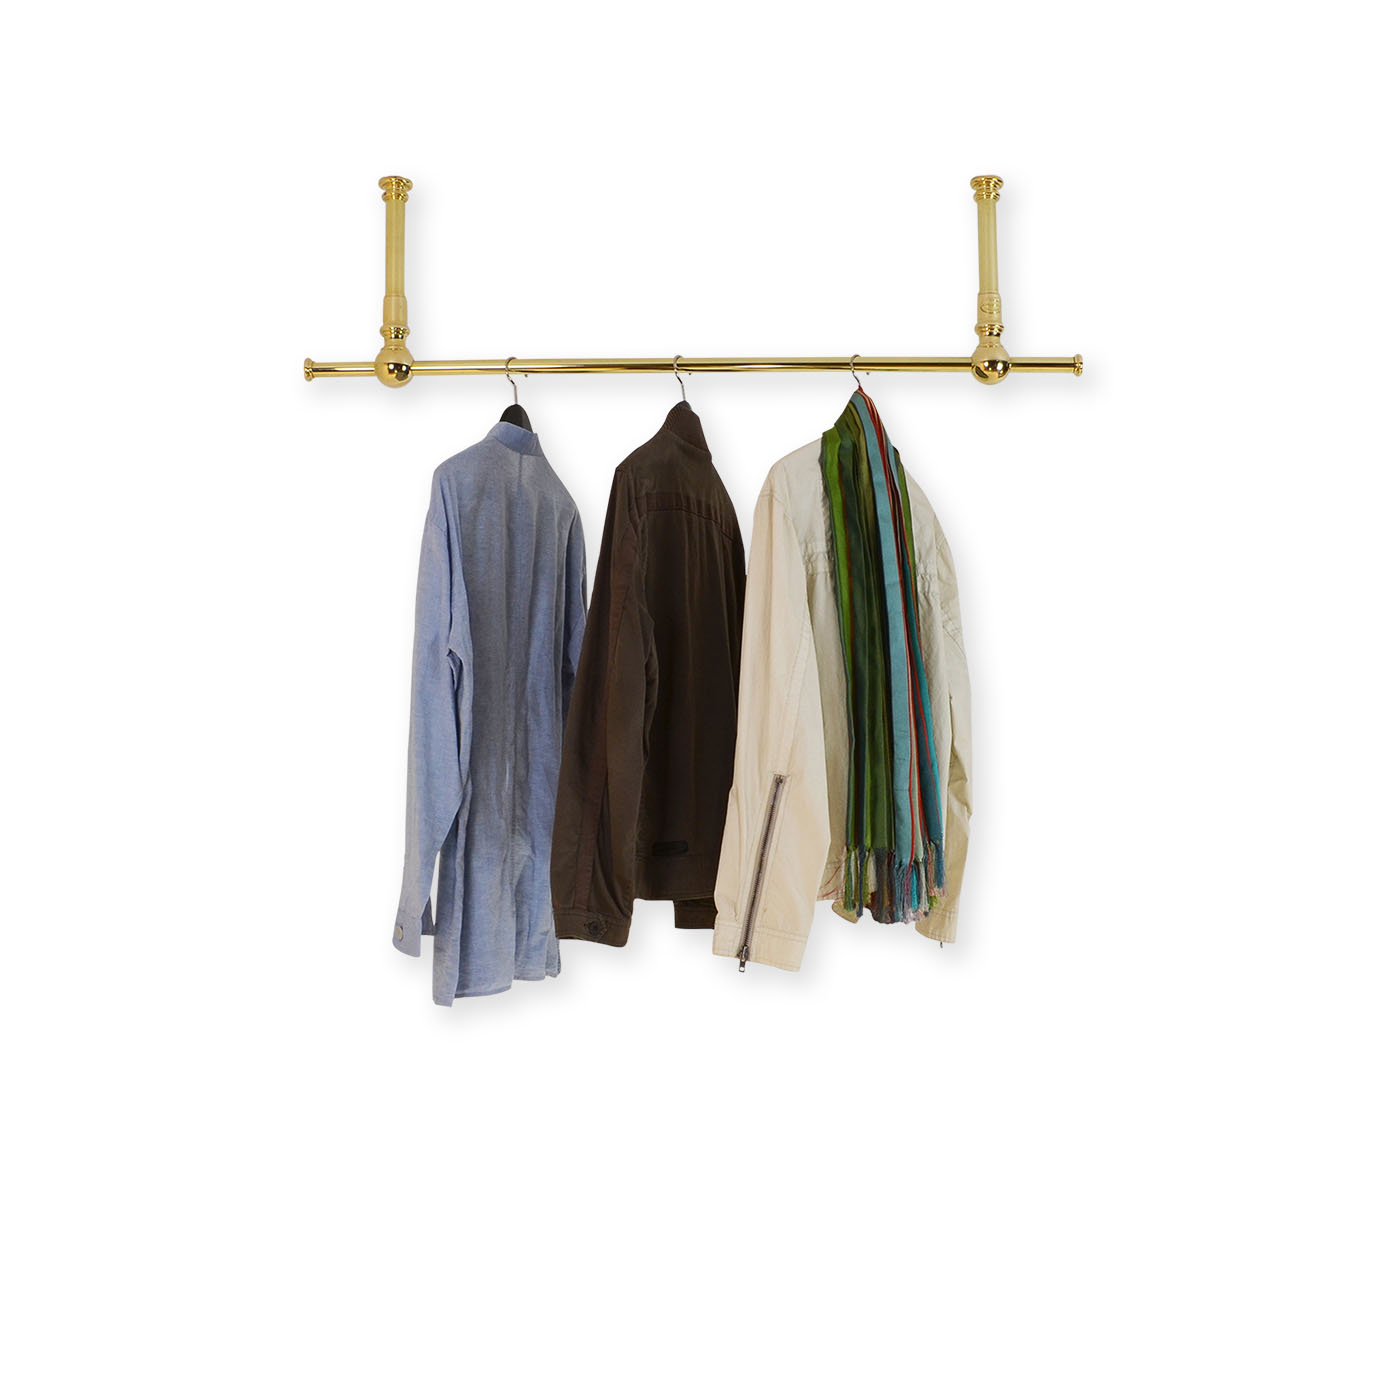 Solid Brass Ceiling Mounted Rail Andrew Nebbett Designs